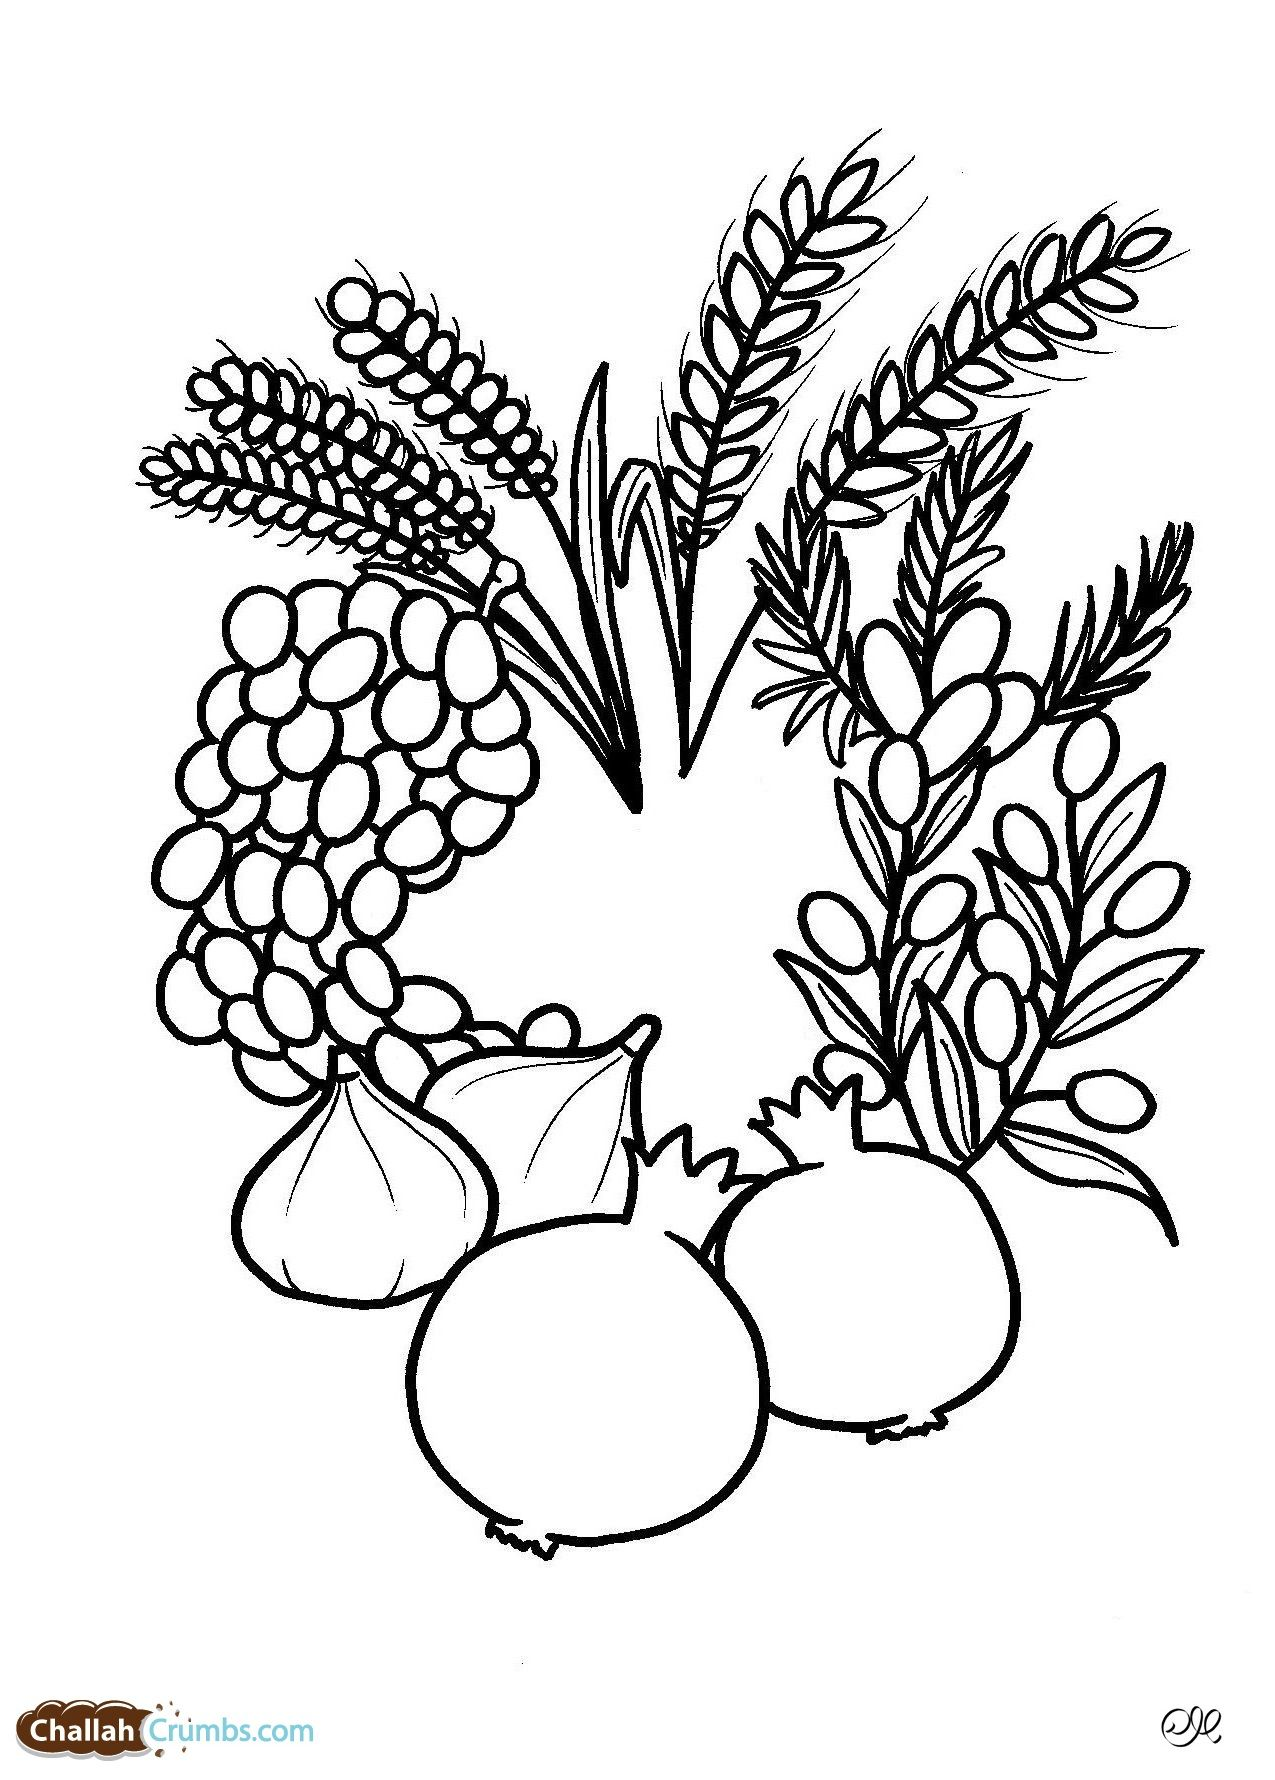 A Great Seven Species Coloring Sheet Tu B Shevat Tu B Shevat Coloring Pages